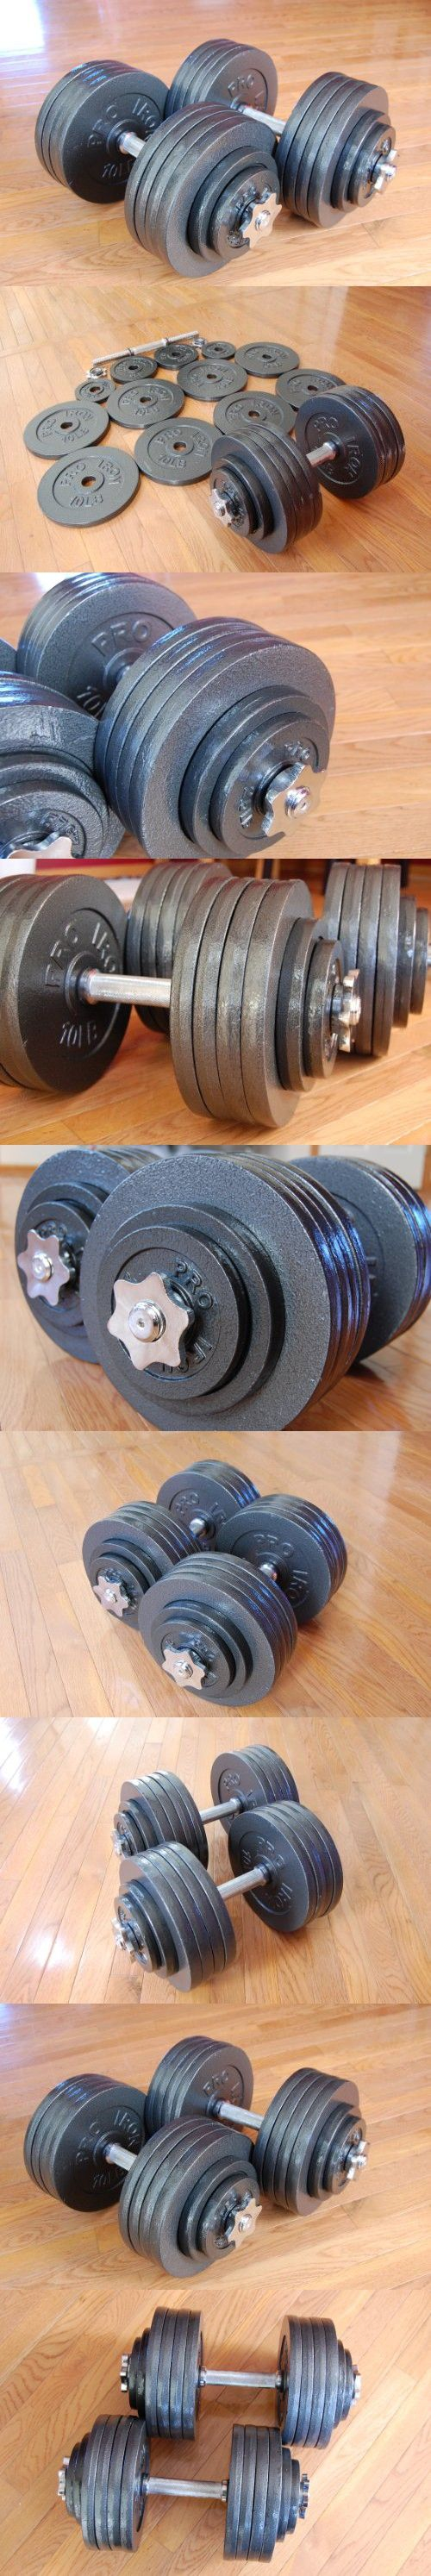 Omnie Adjustable Dumbbells with Gloss Finish and Secure Fit Collars, 200 LBS Sets (Pair)